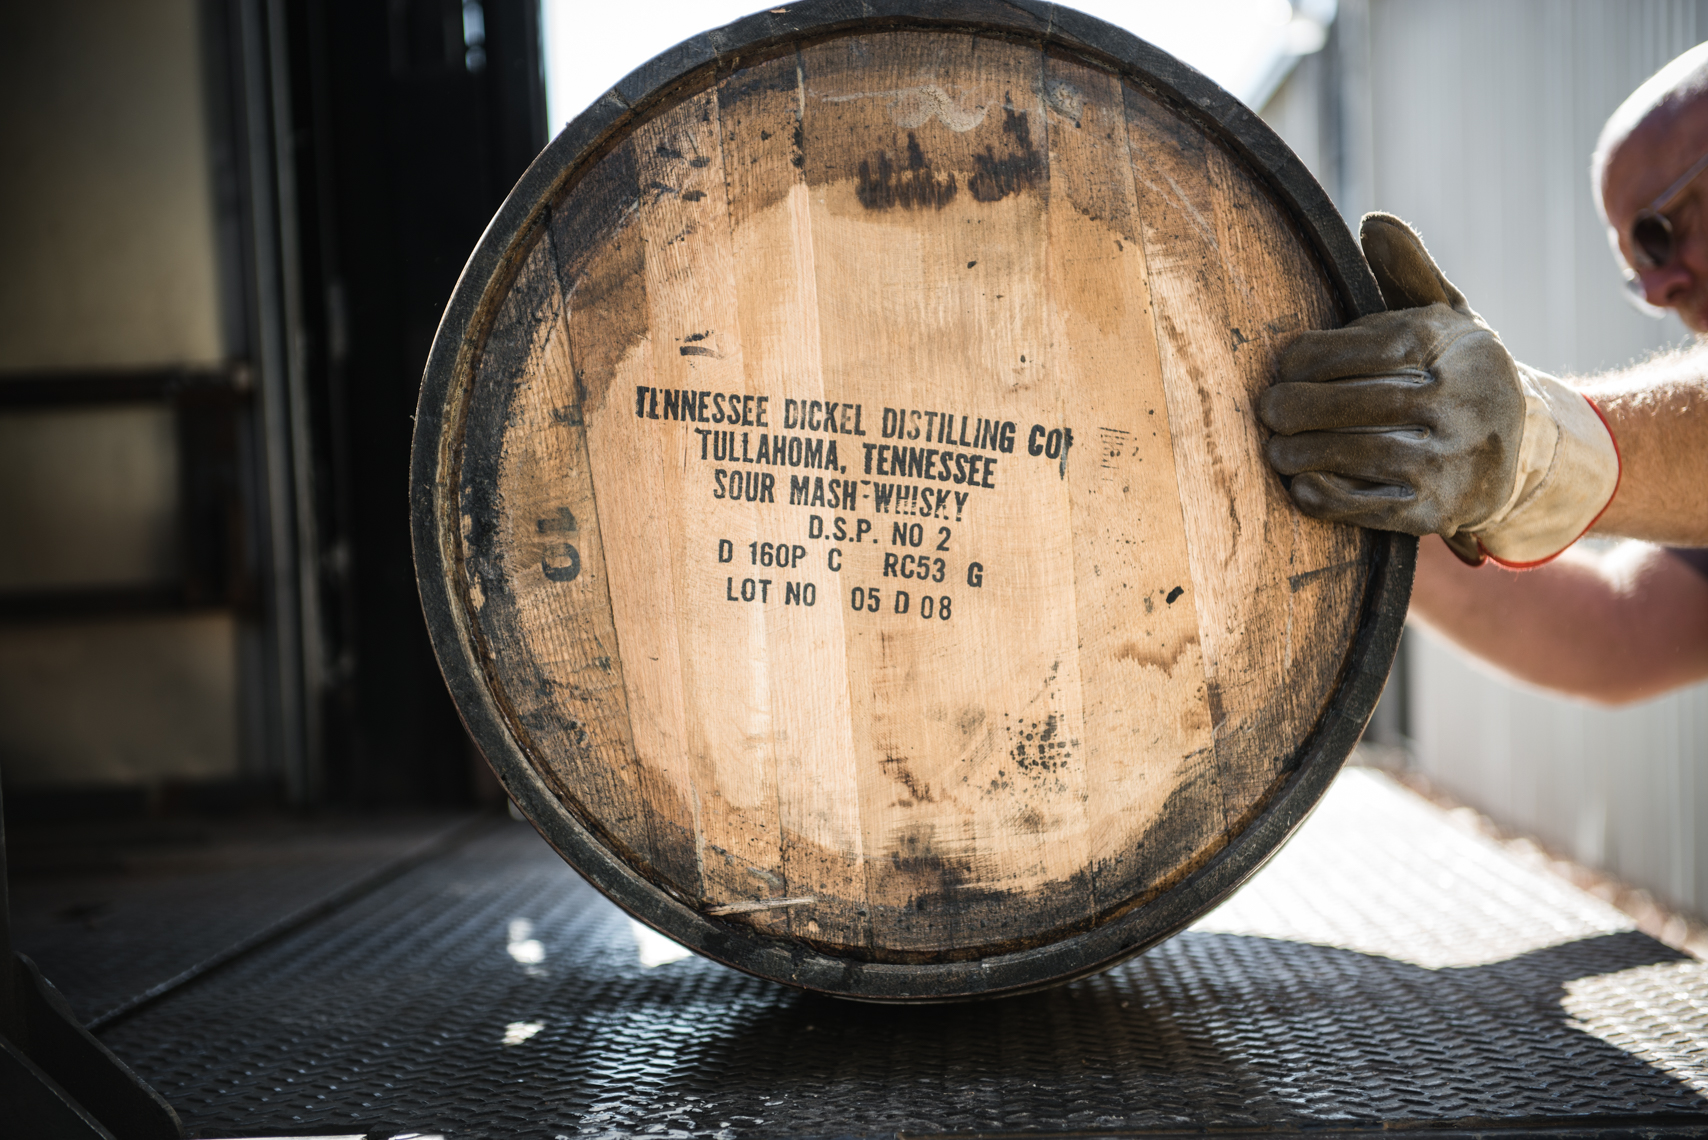 George Dickel Distillery - Tennessee Whiskey, Nashville, beverage photographer, food photographer, worker, working, makers, craft, editorial photographer, stock photography